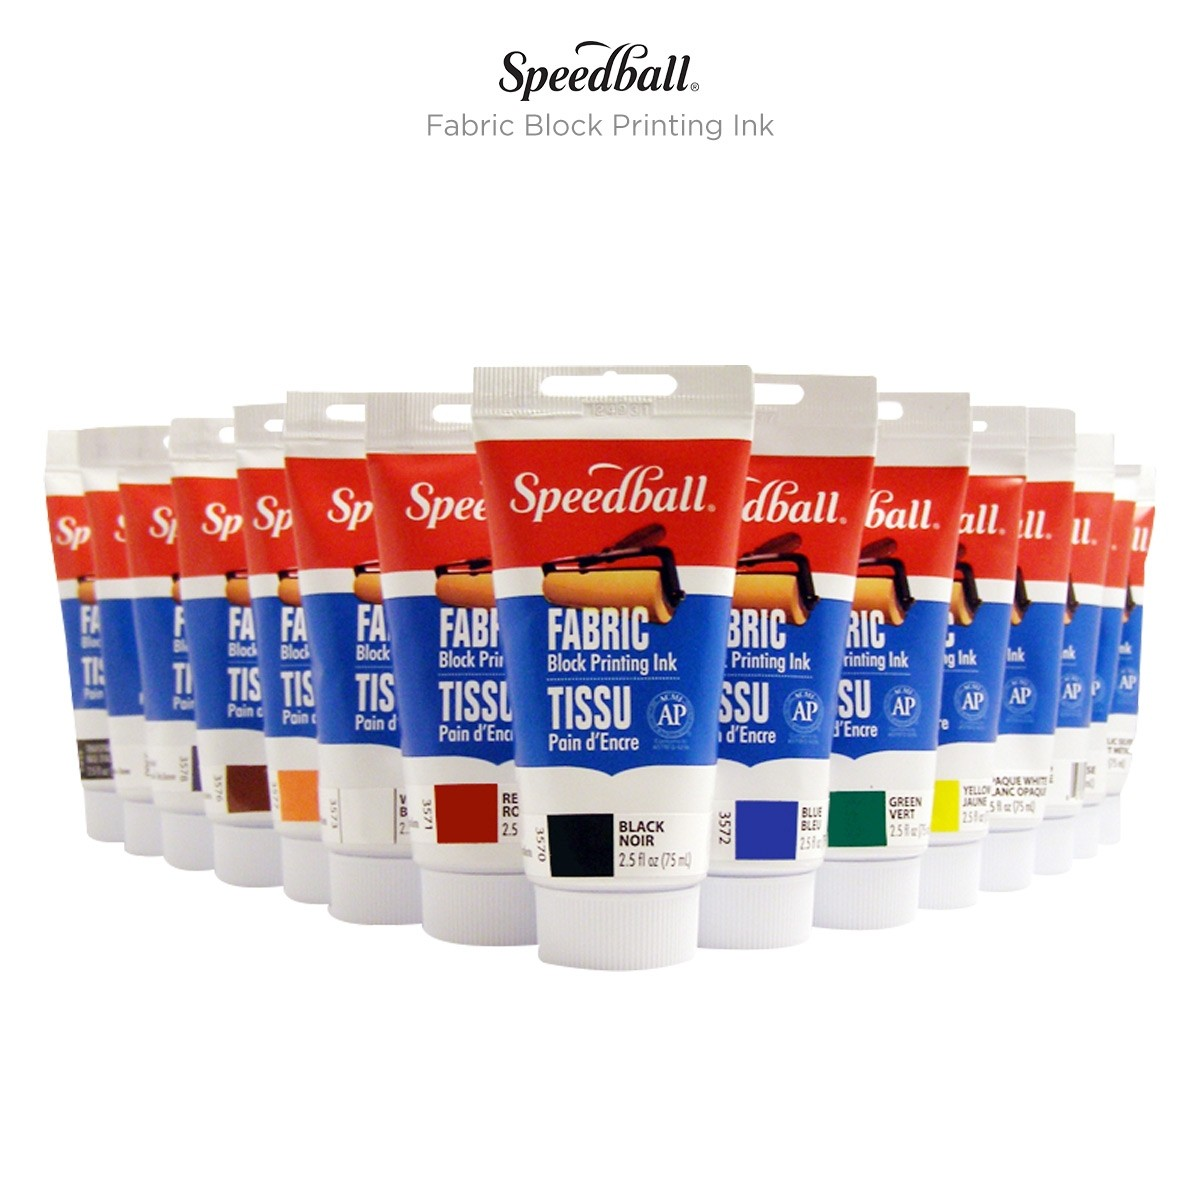 2.5 oz Tubes of Speedball Fabric Block Printing Ink